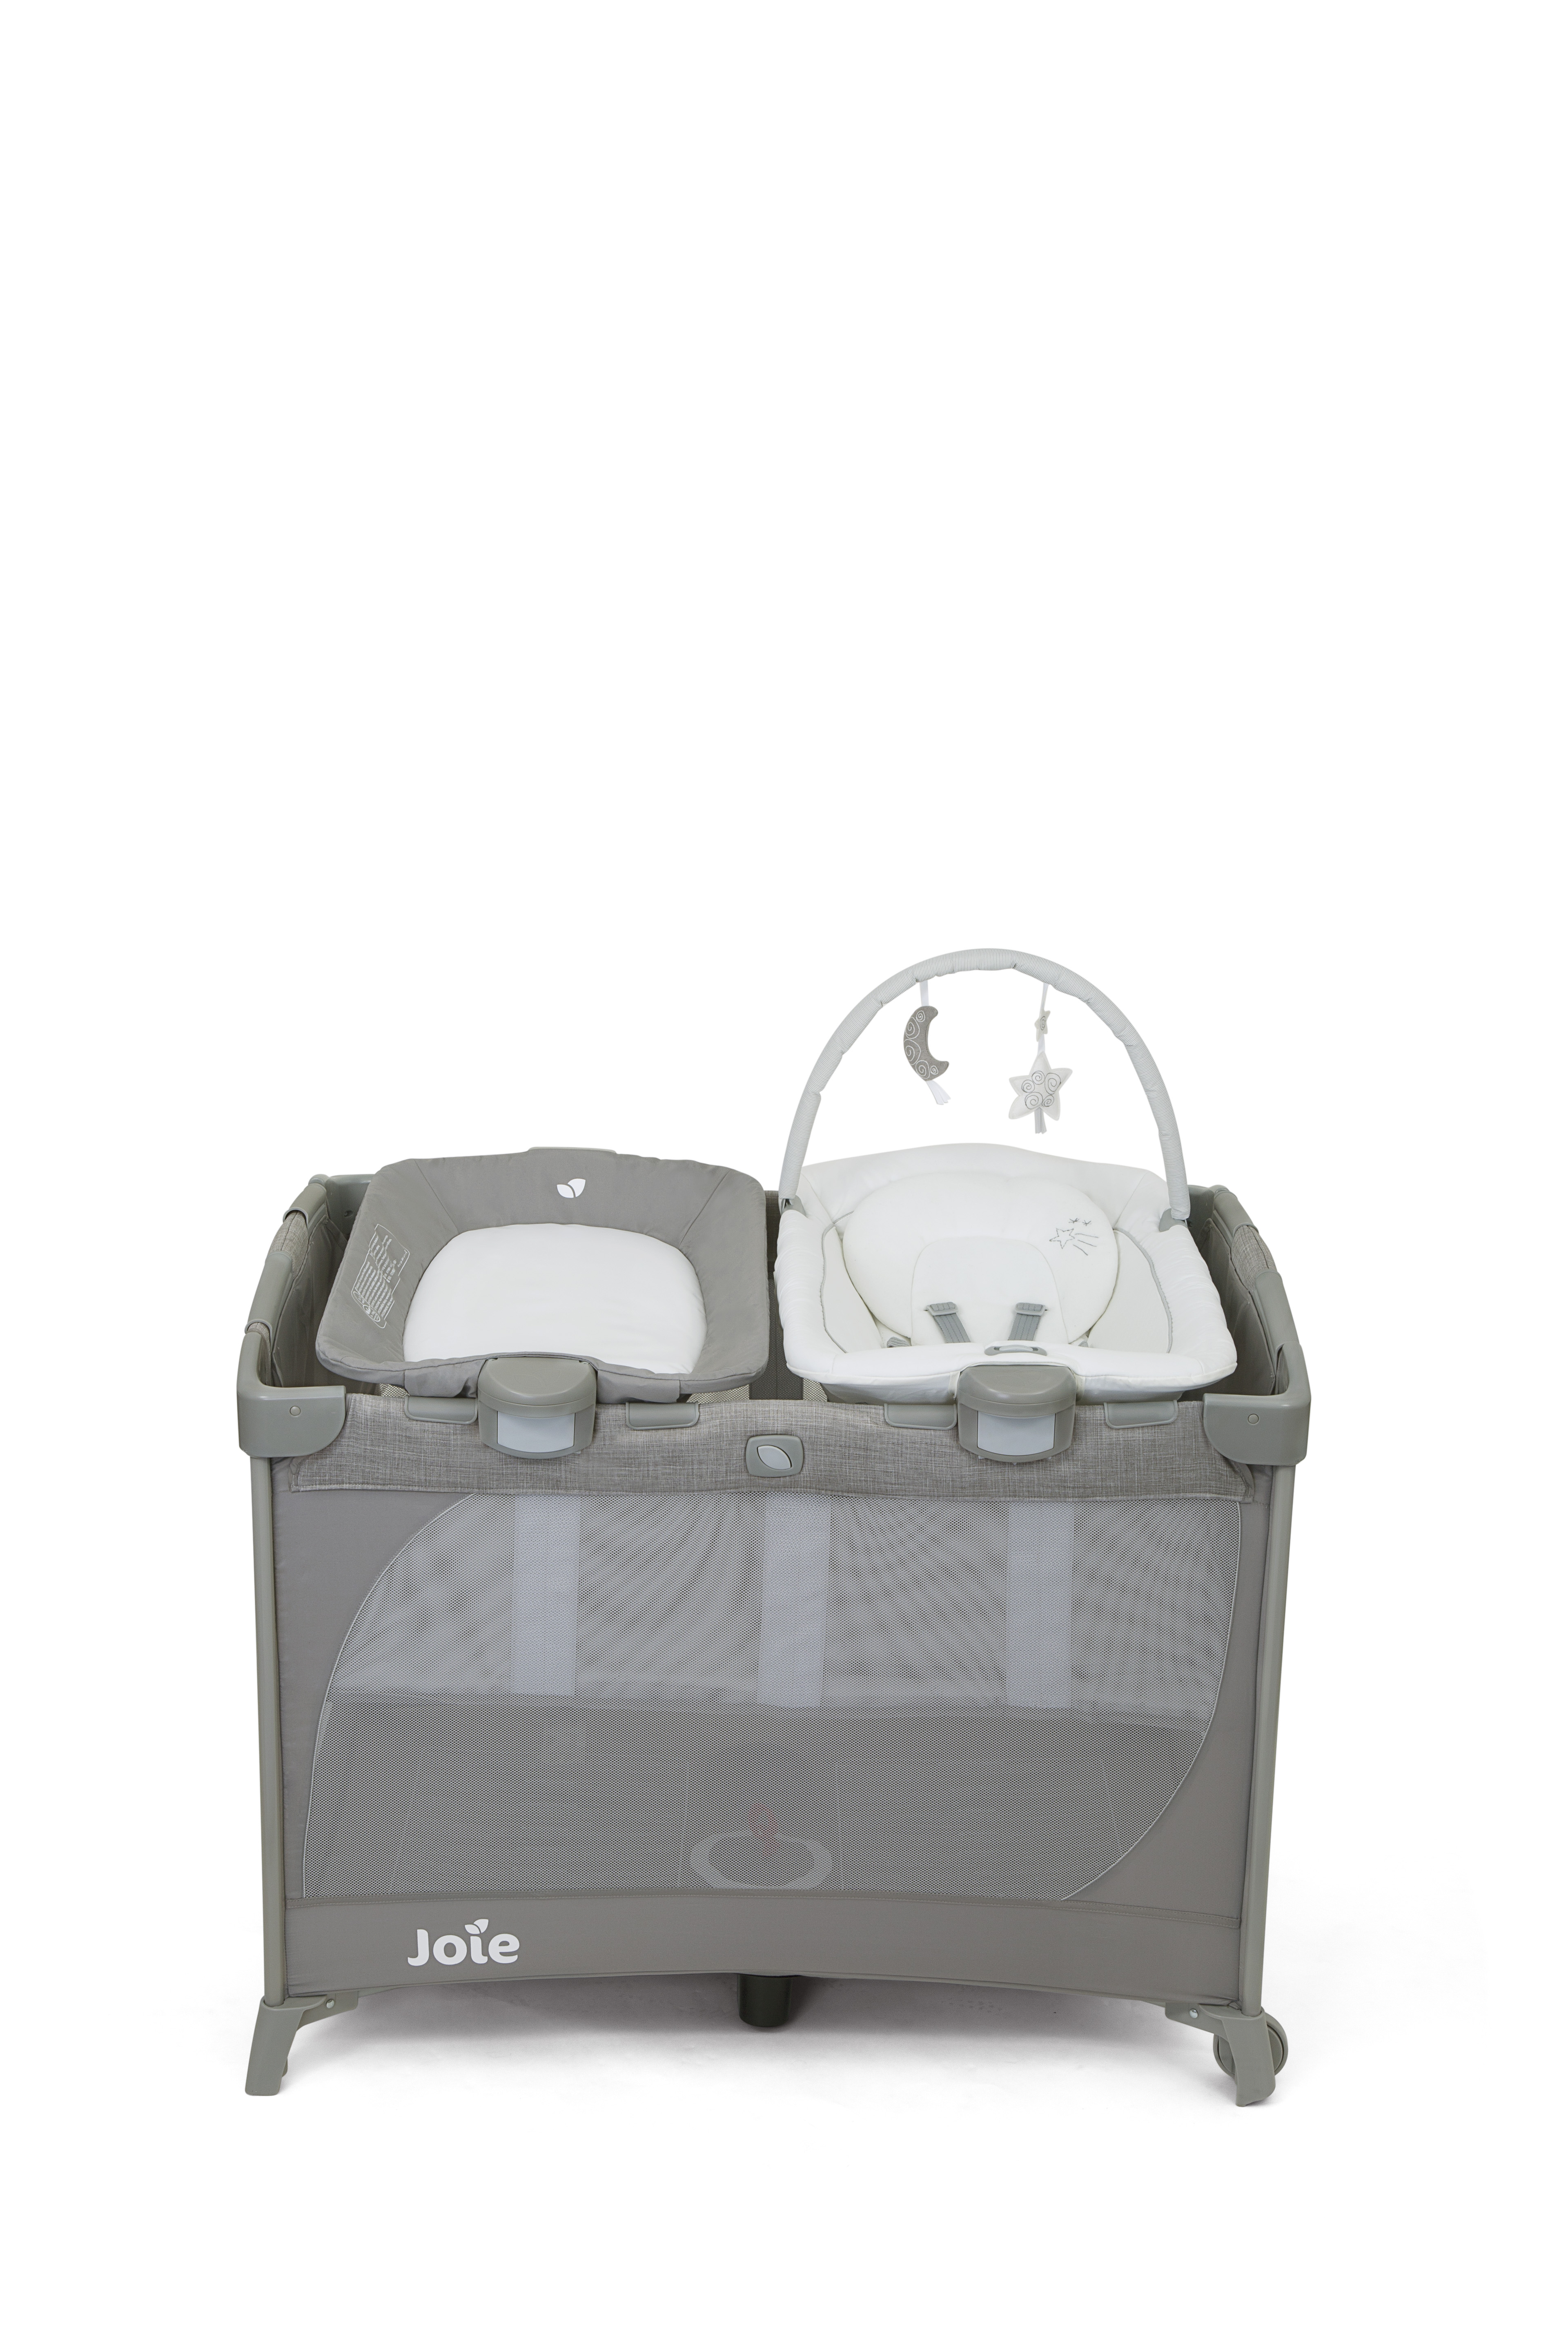 Mothercare | Joie Commuter Change & Bounce Playpen Starry Night